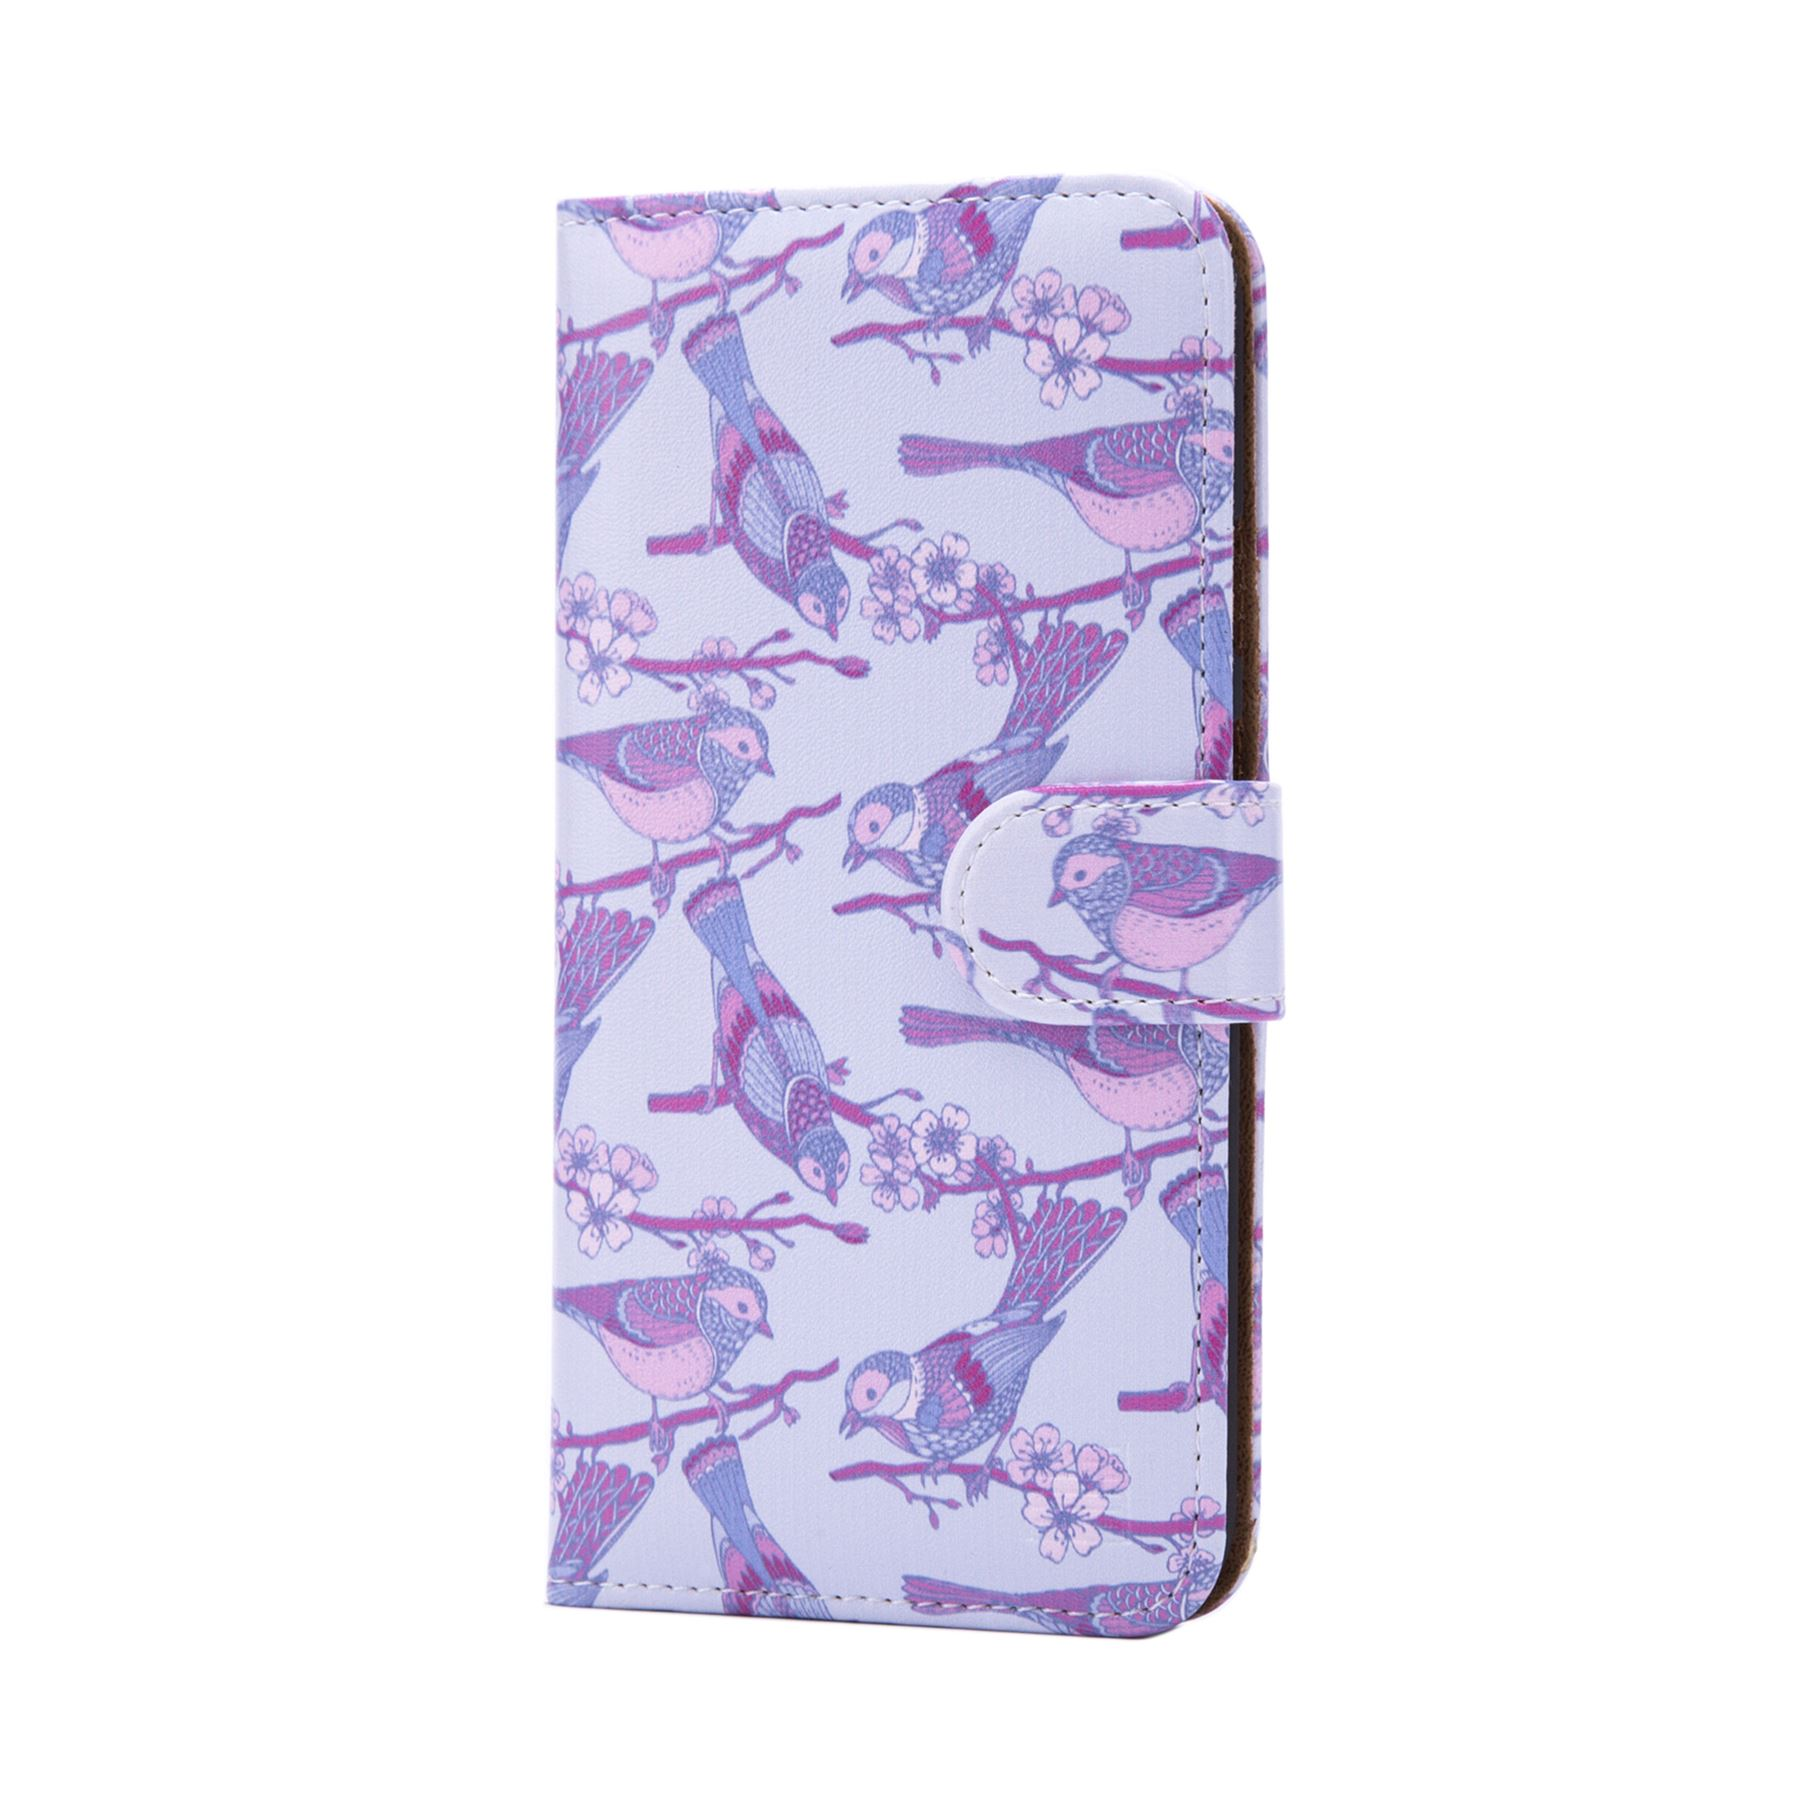 PU-Leather-Floral-Design-Book-Wallet-Case-Cover-For-Google-Pixel thumbnail 14